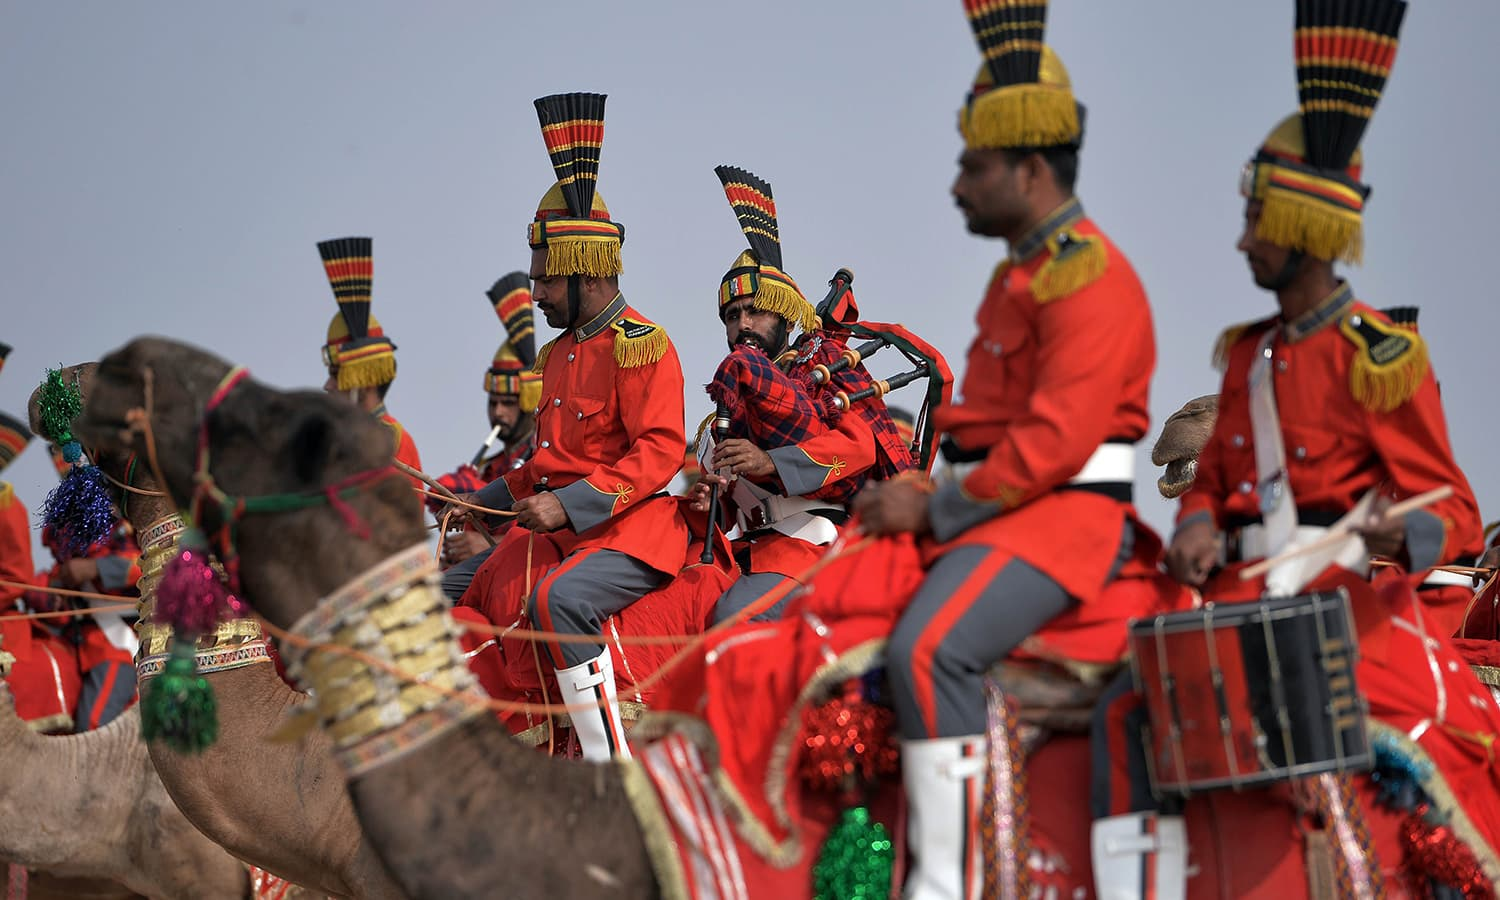 In this photograph taken on November 13, 2015, band members of Pakistan Desert Rangers sit on their camels as they perform during a march in Moj Garh, some 100 kilometres east of Bahawalpur in Punjab province. —AFP